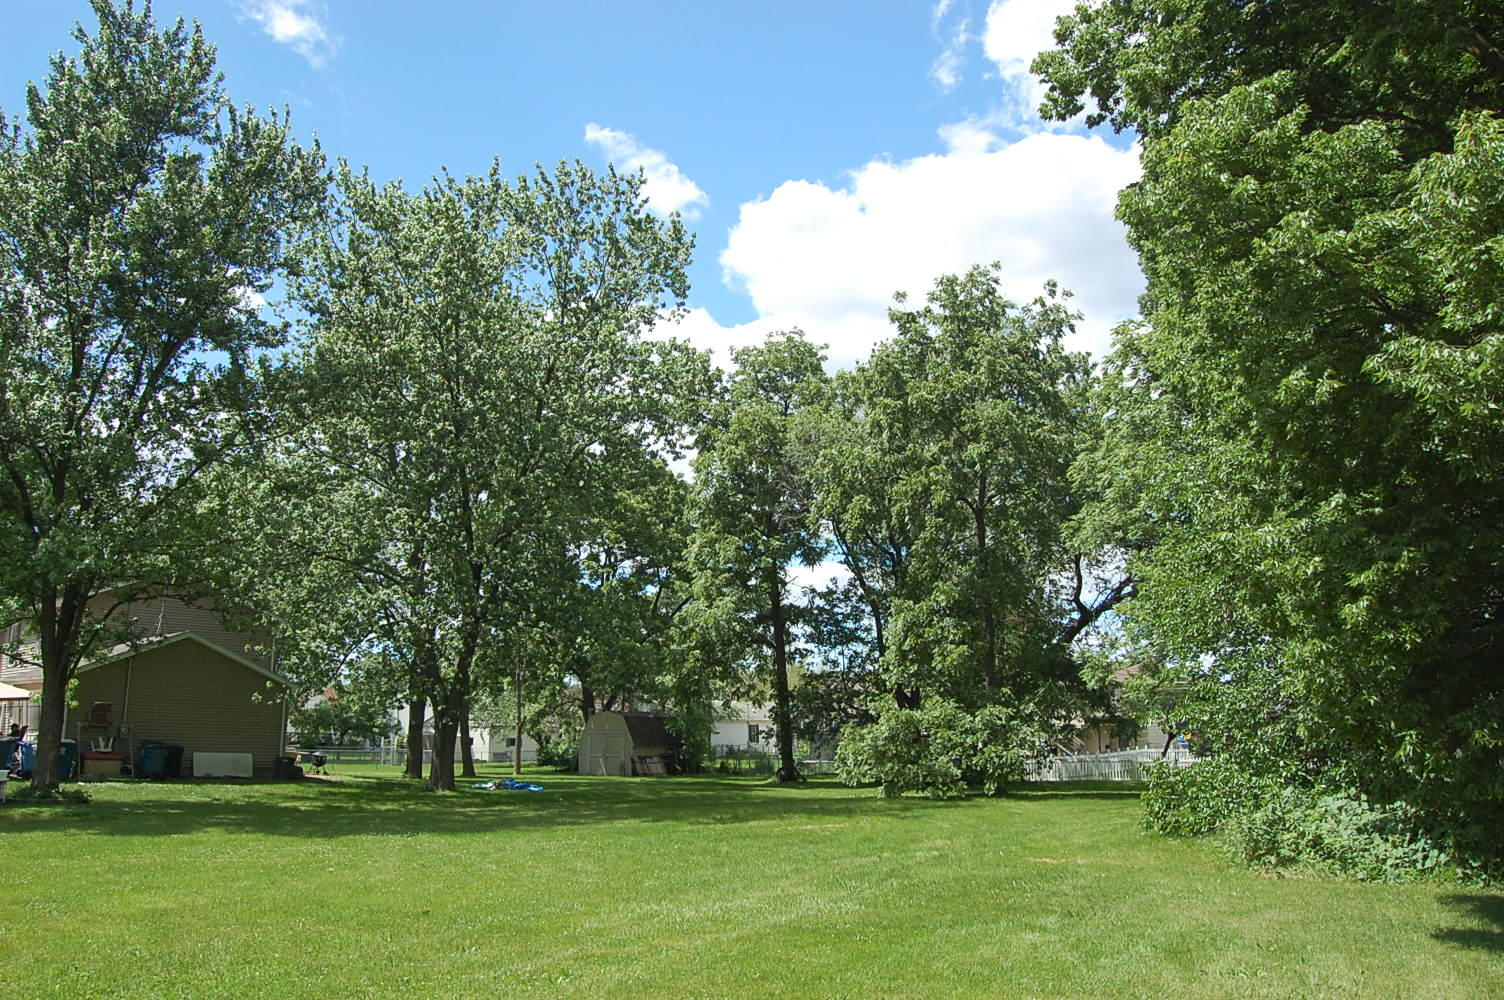 Usable Land in Friendly Illinois Town - Image 1